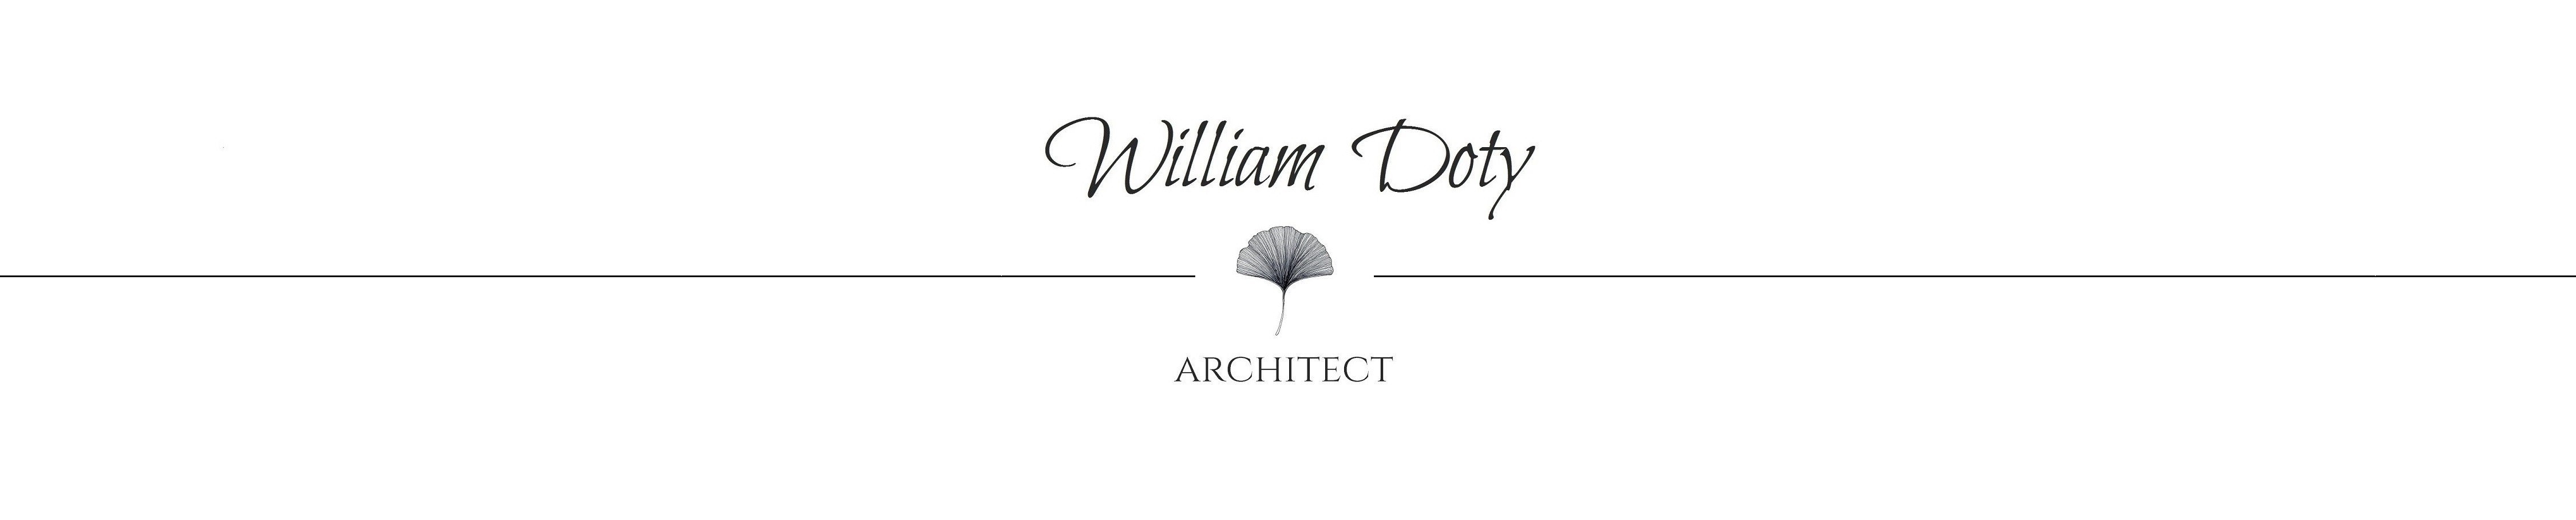 William A. Doty